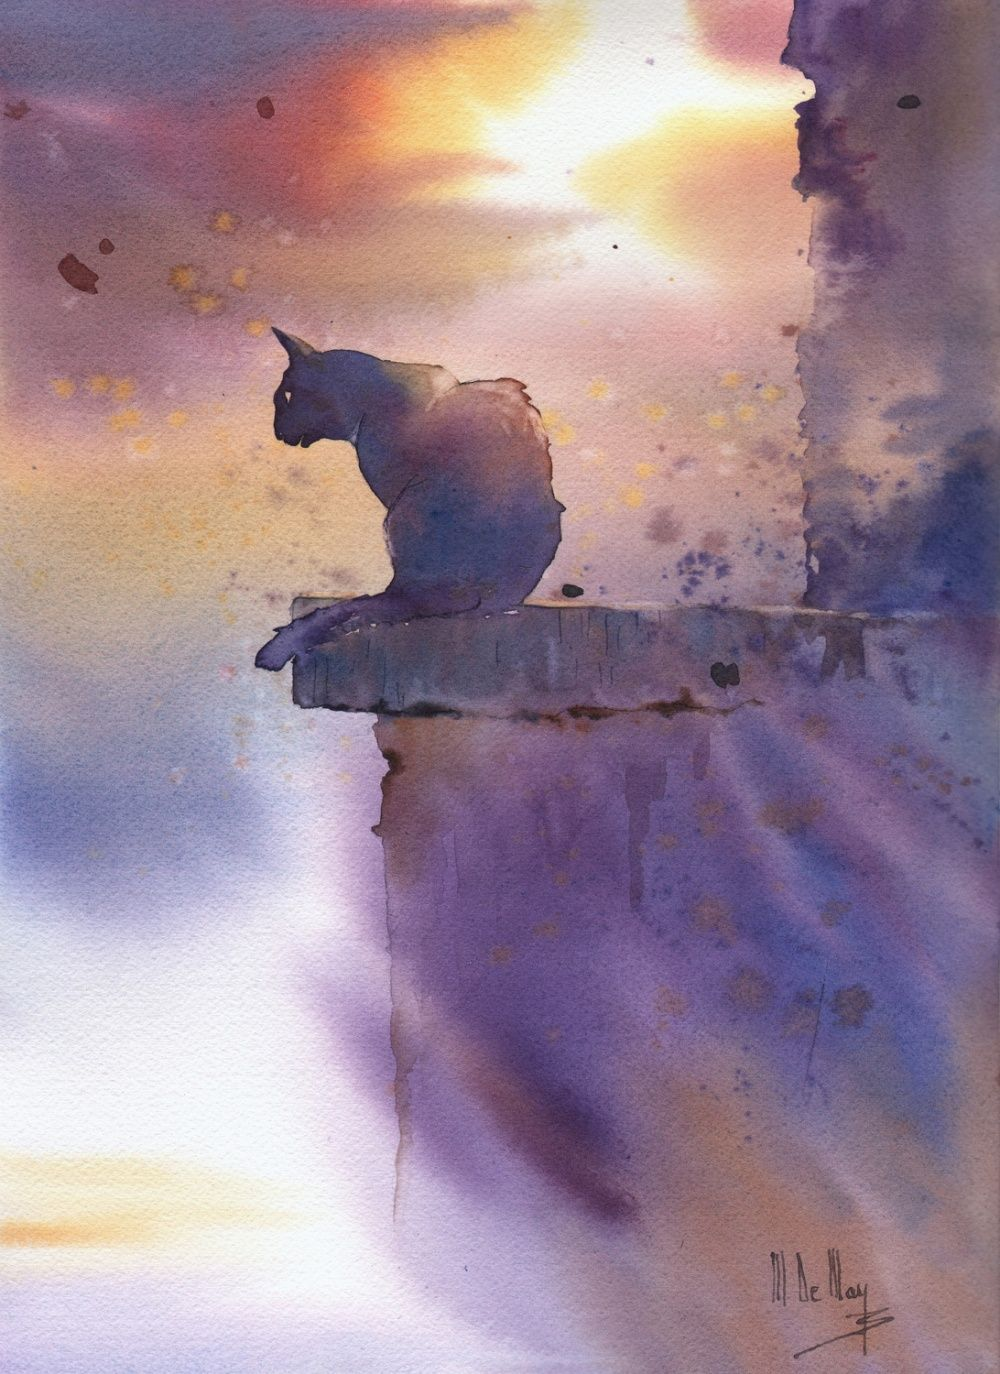 Galerie D Aquarelles Maryse De May Animaux D Aquarelle